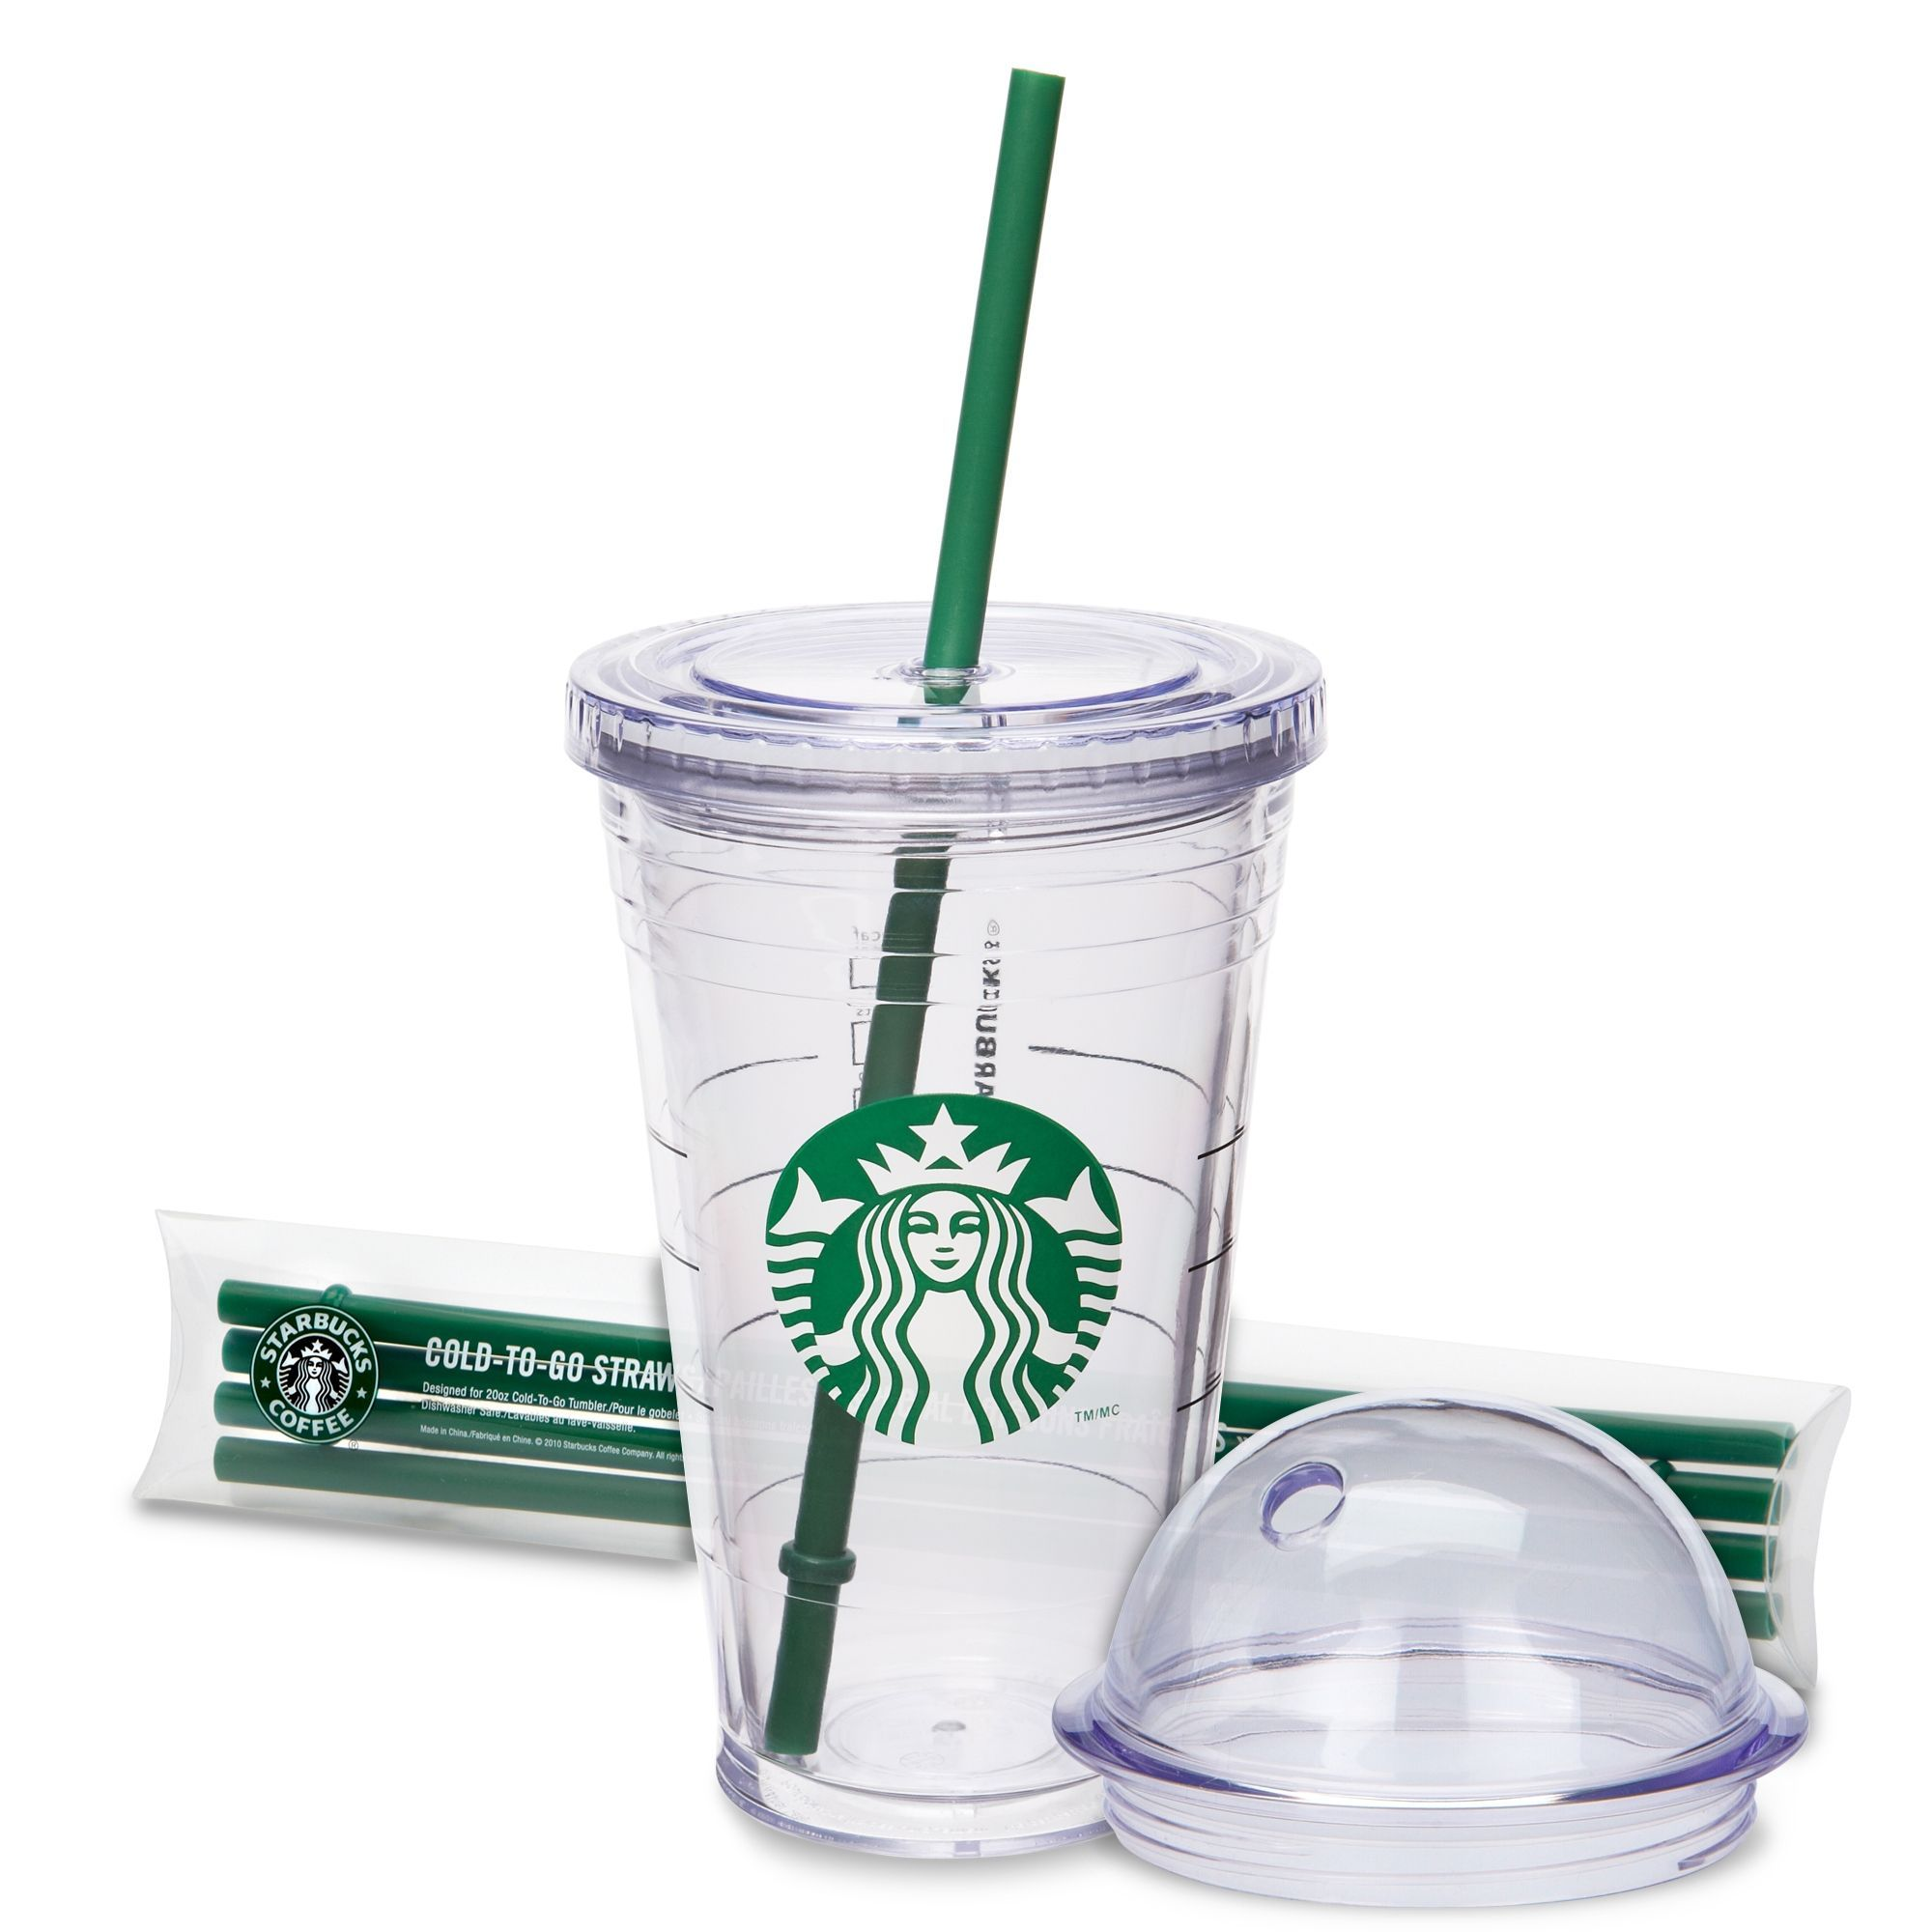 16 oz Cold Cup Kit from Starbucks with domed lid and set